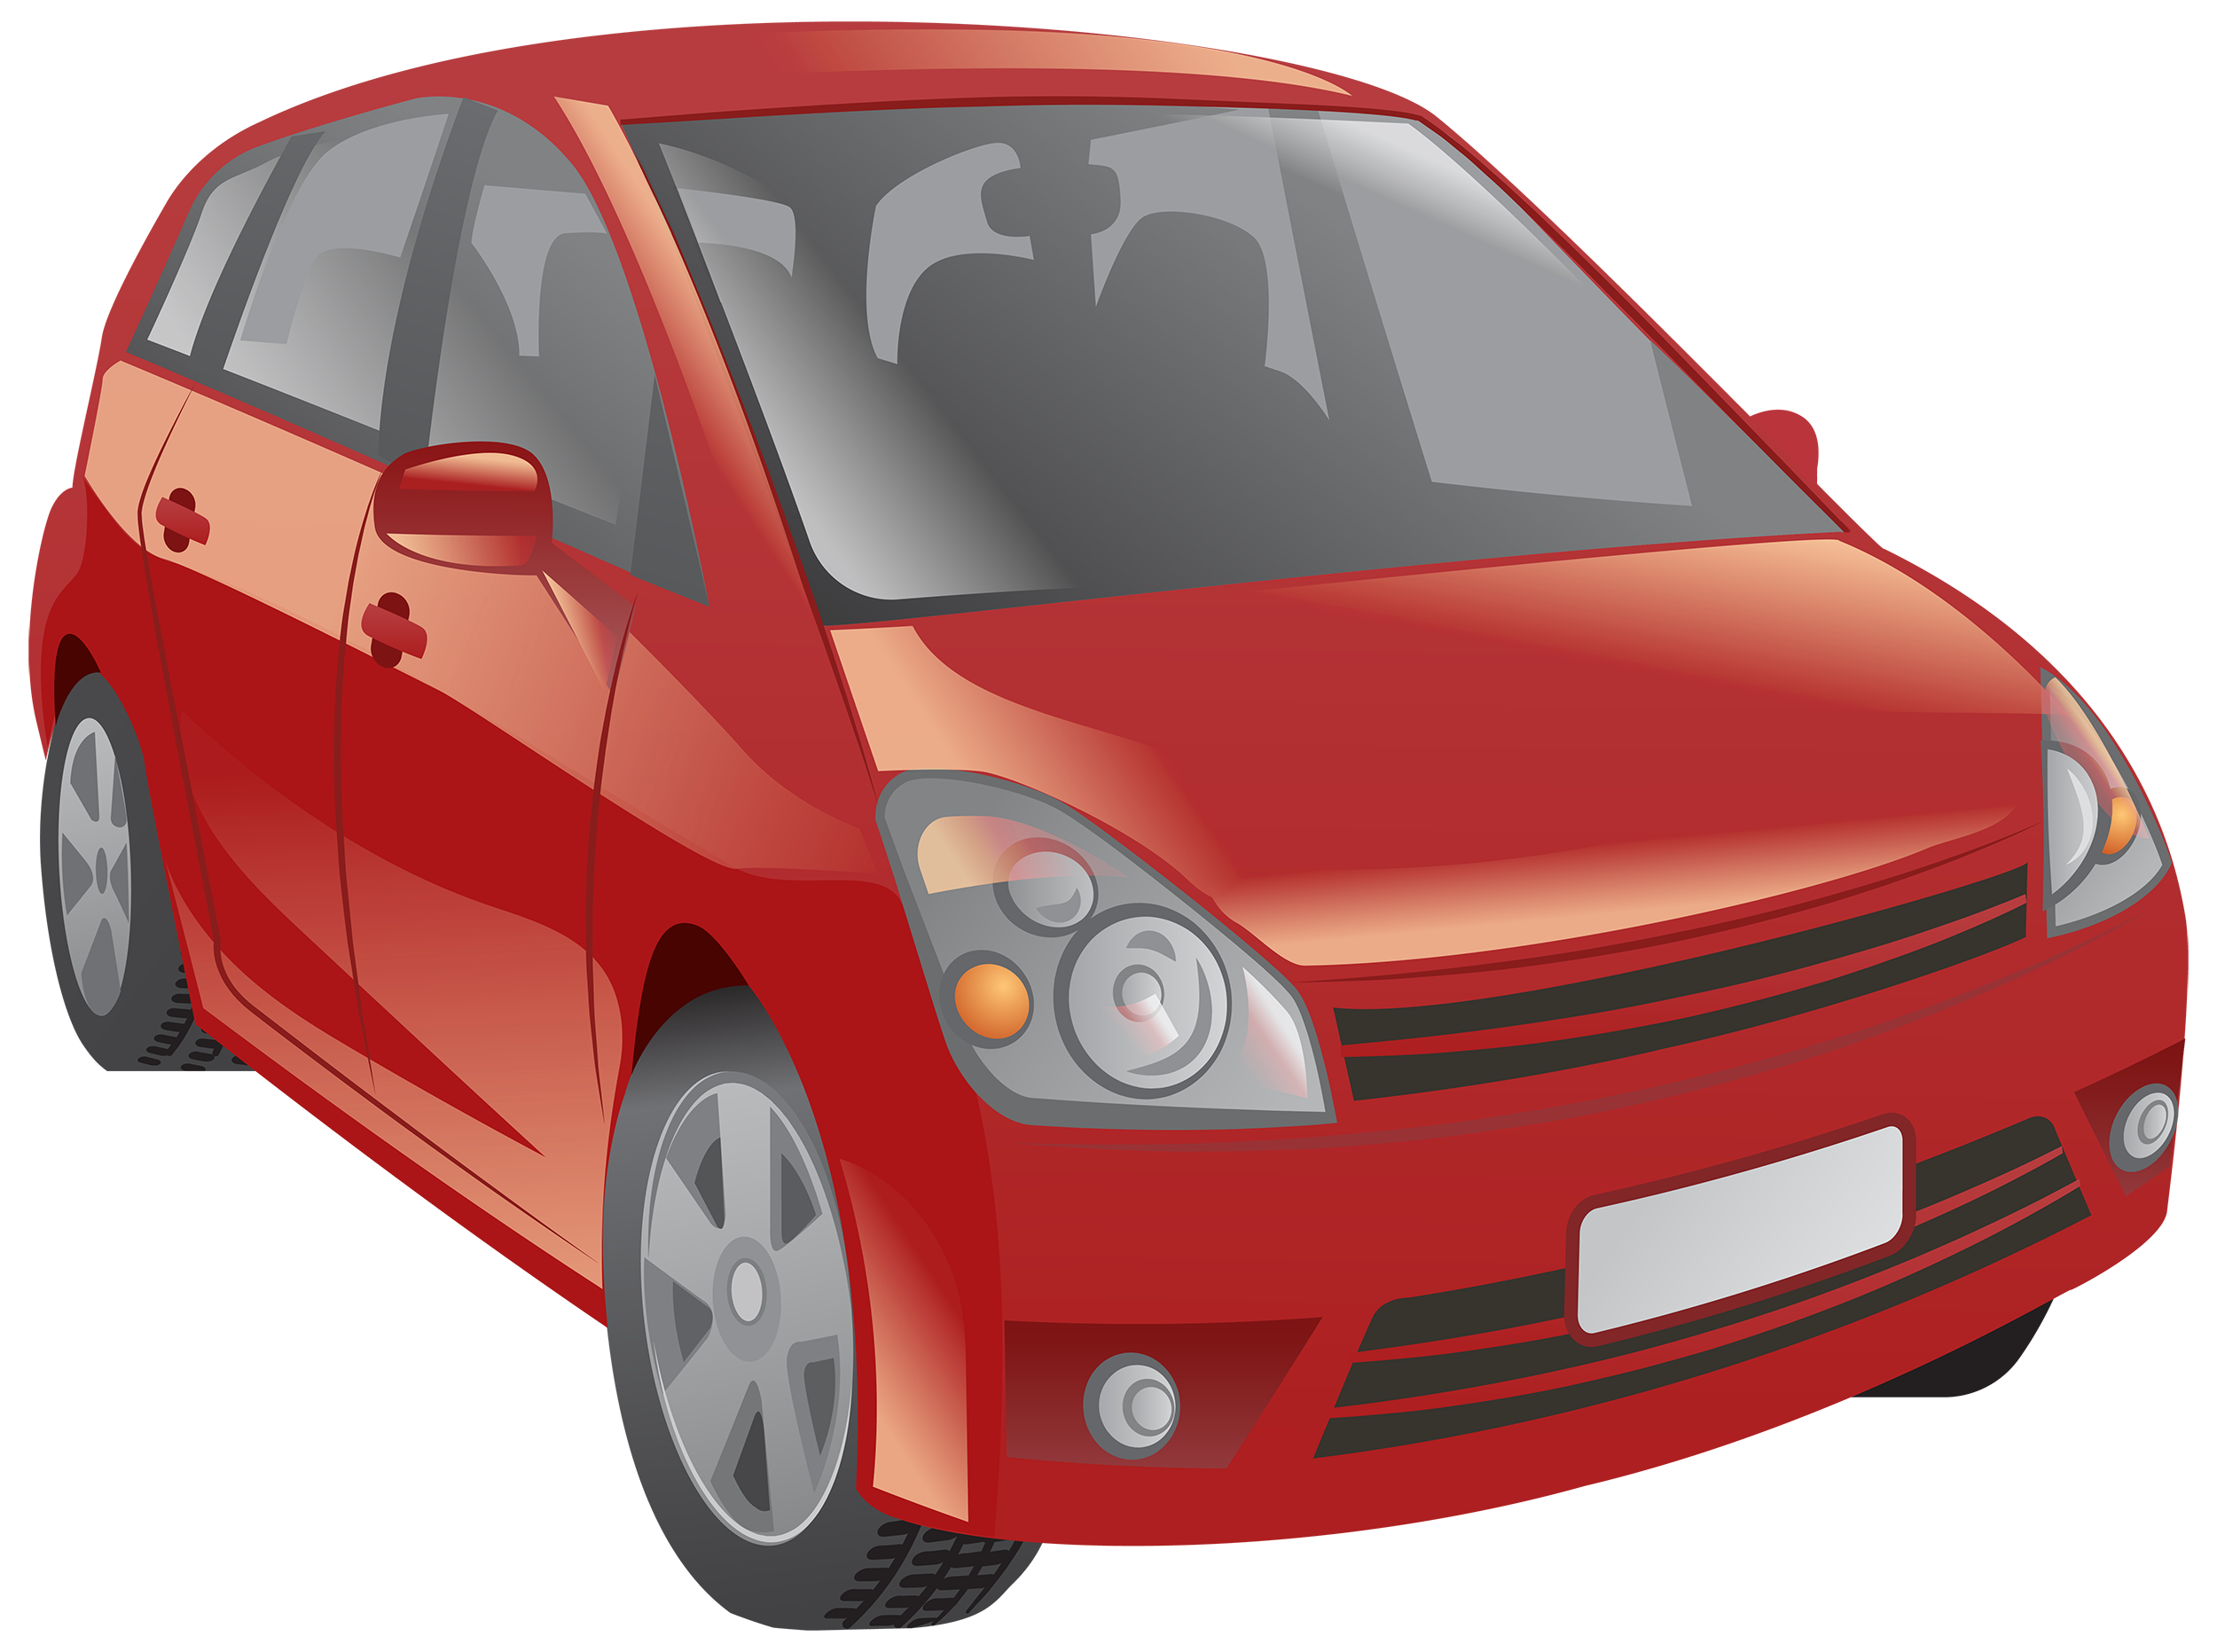 Car doors clipart svg transparent download Red Car PNG Clipart - Best WEB Clipart svg transparent download